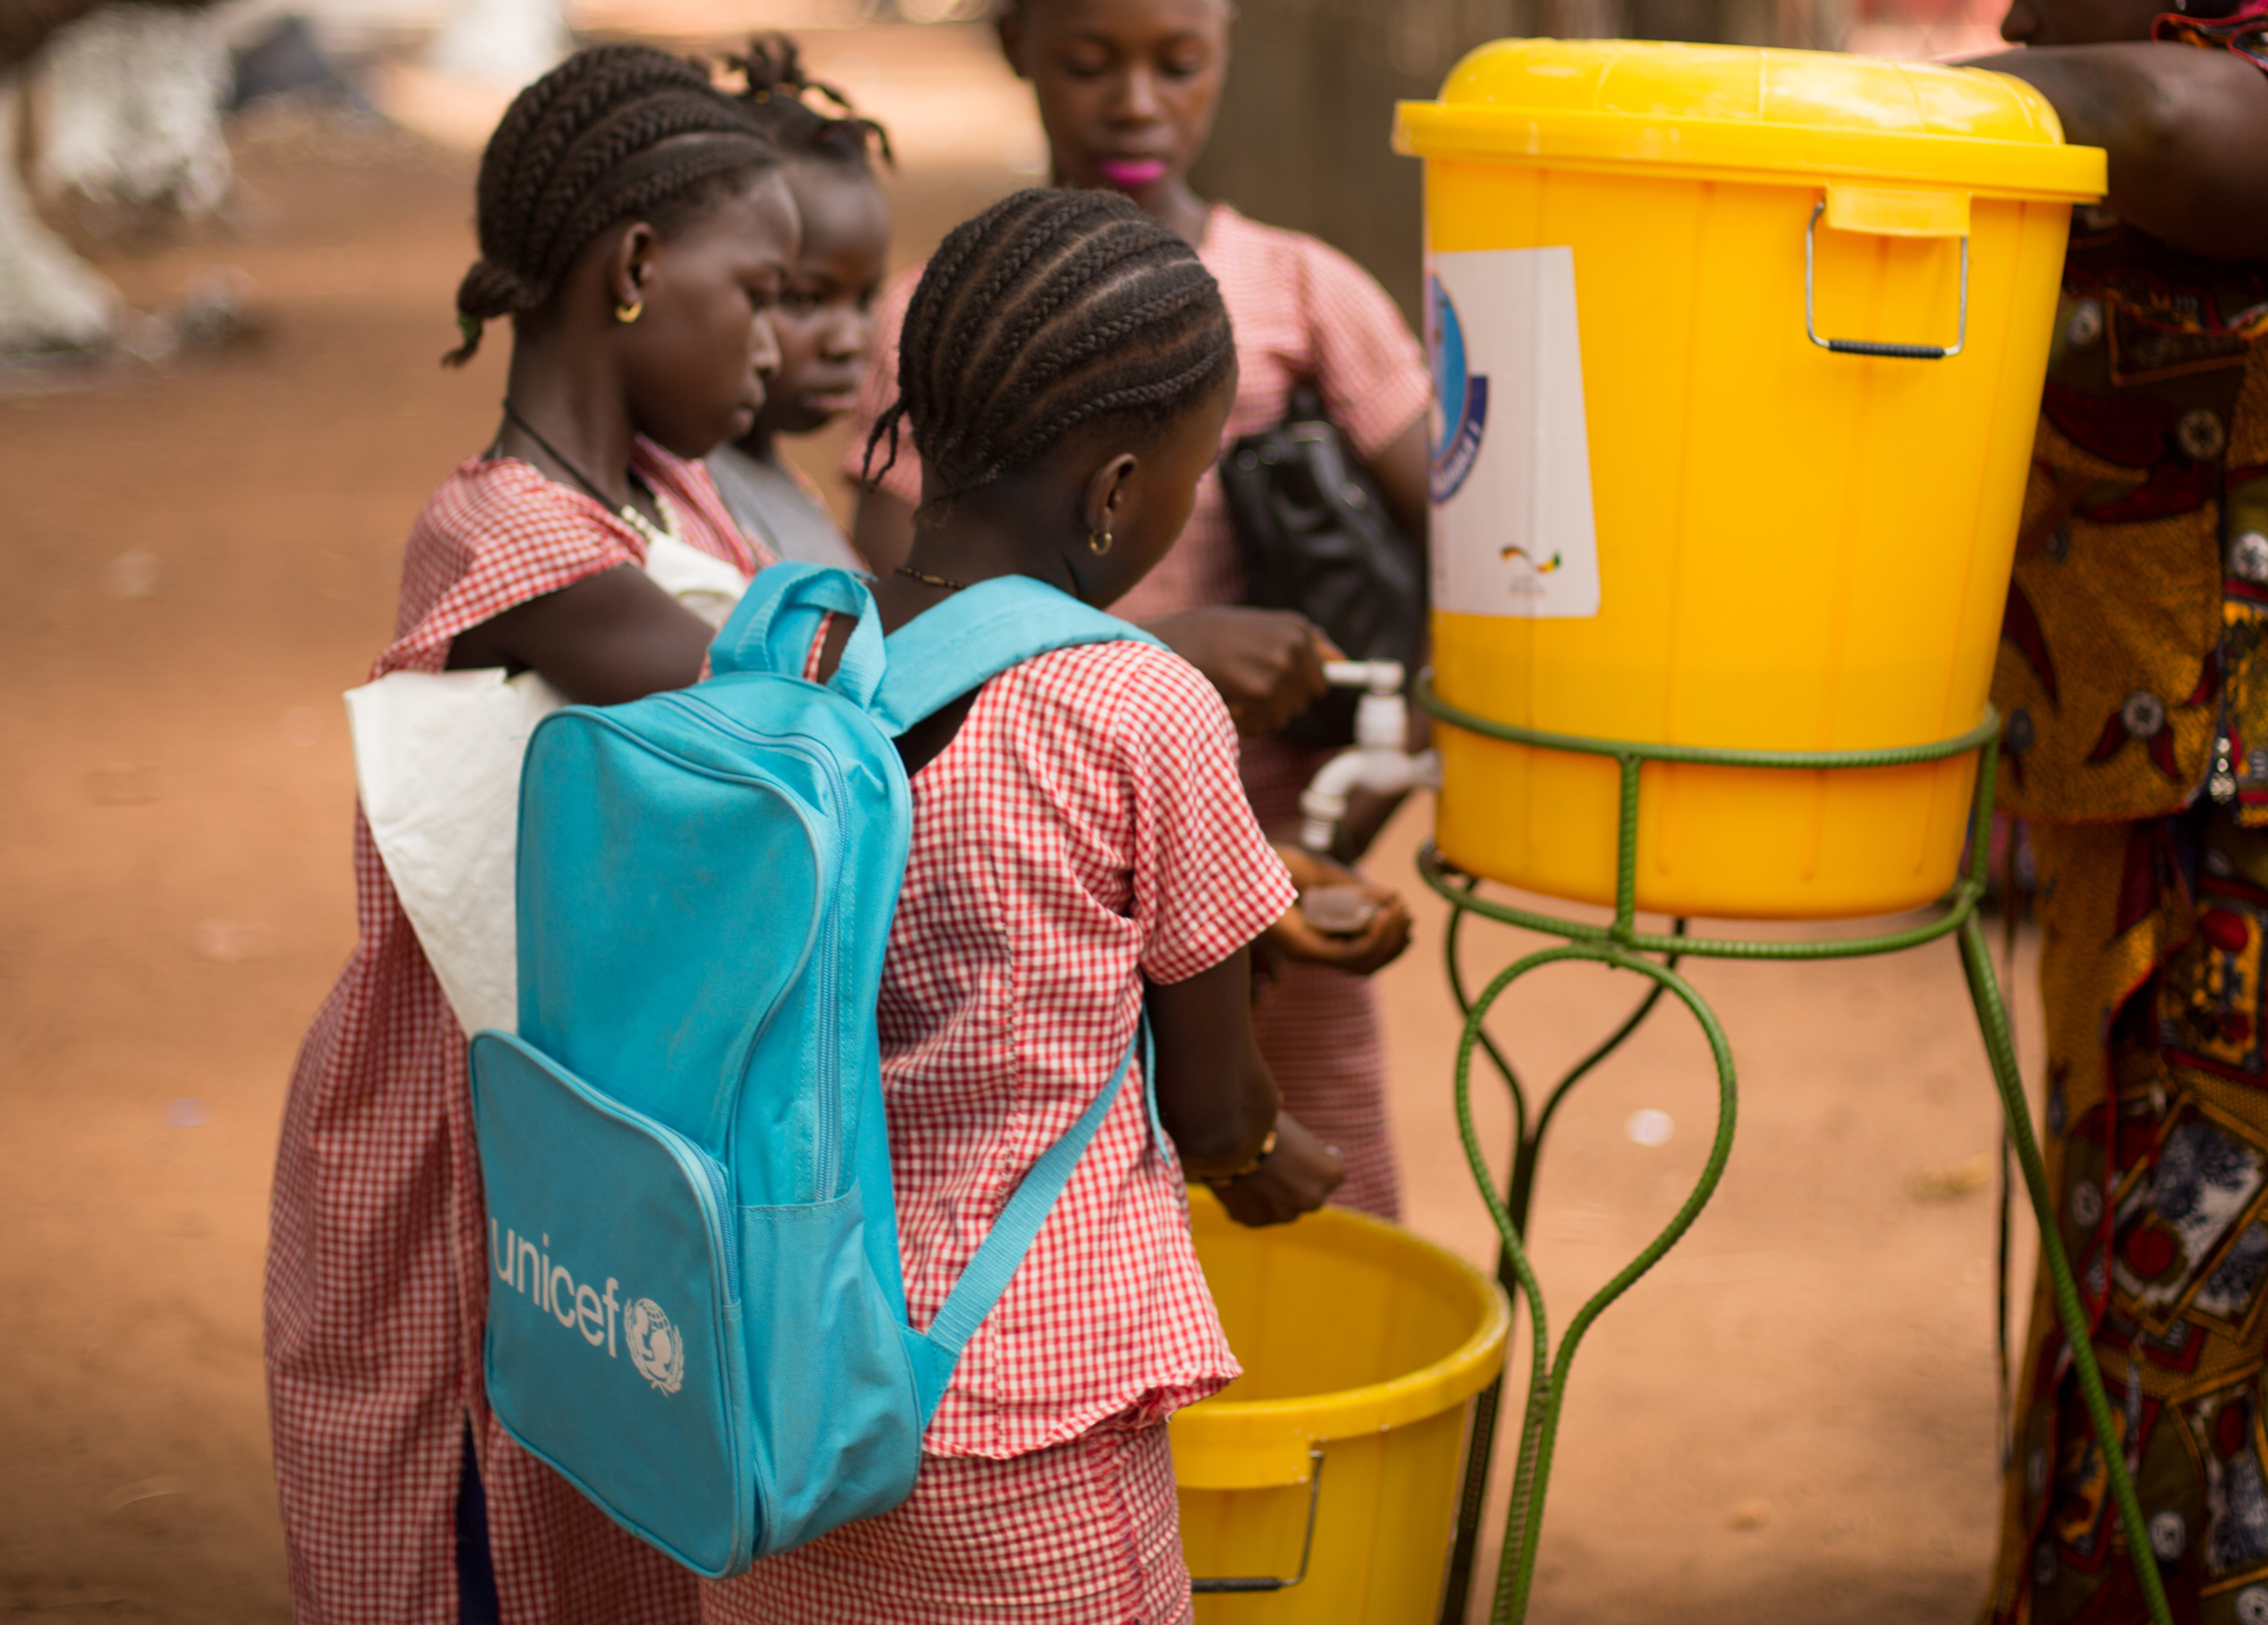 children in a UNICEF backpack getting water from a water cooler